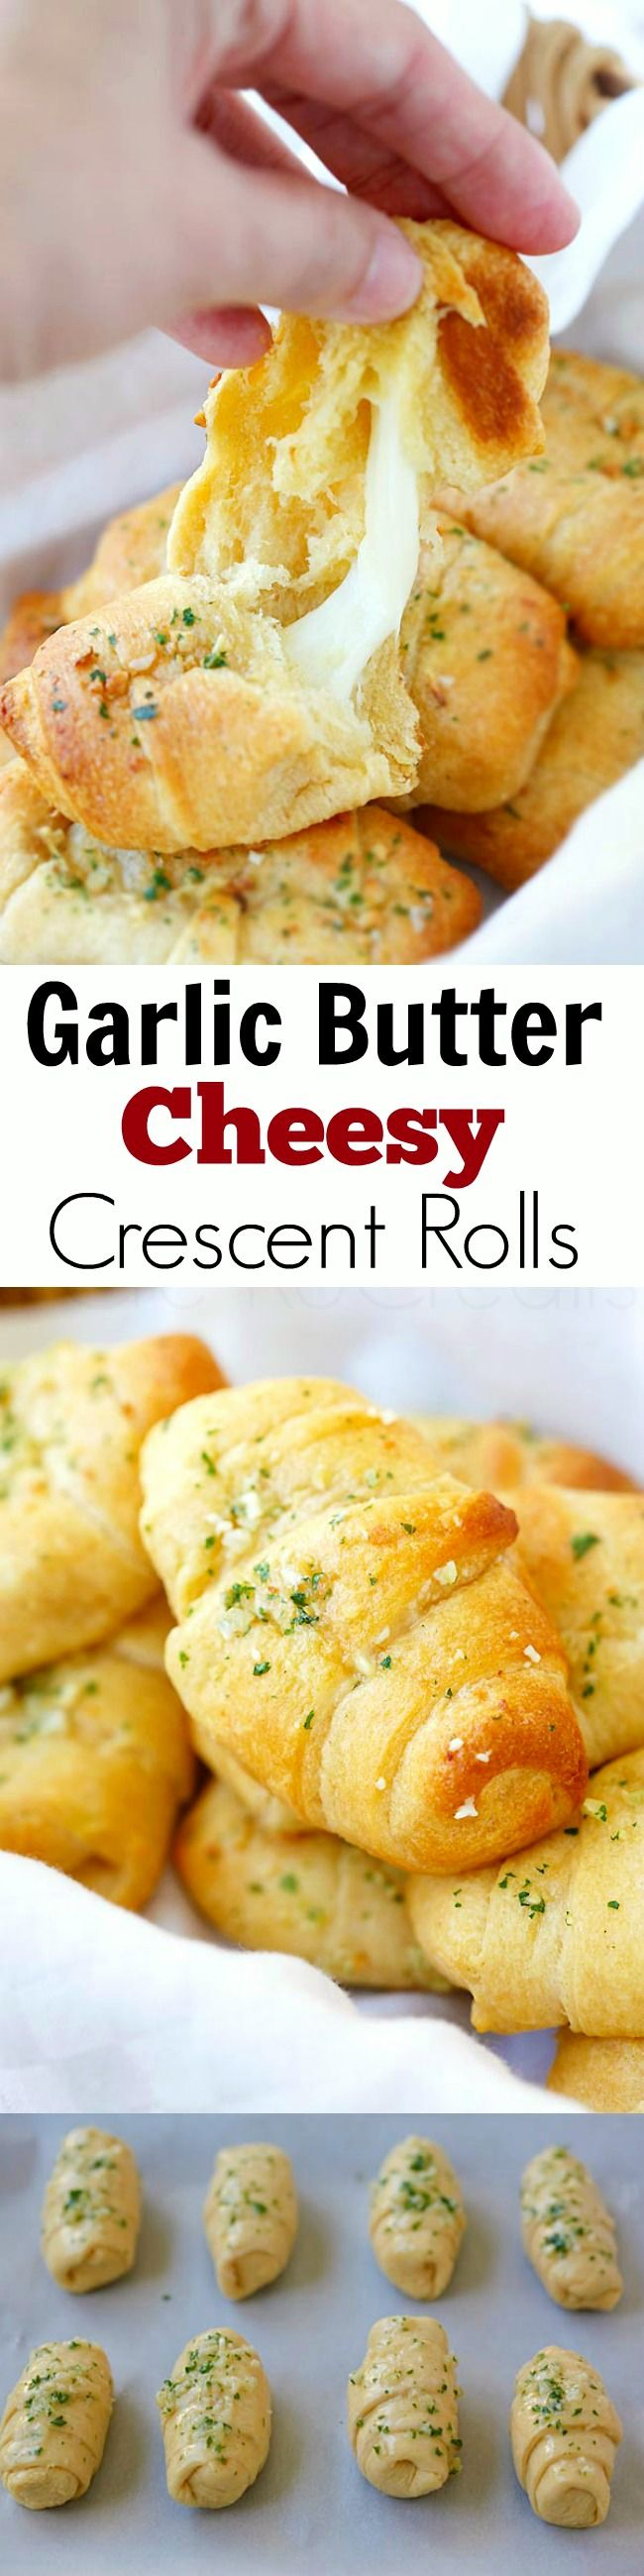 Crescent rolls loaded with mozzarella cheese and topped with garlic butter. Yes please:)